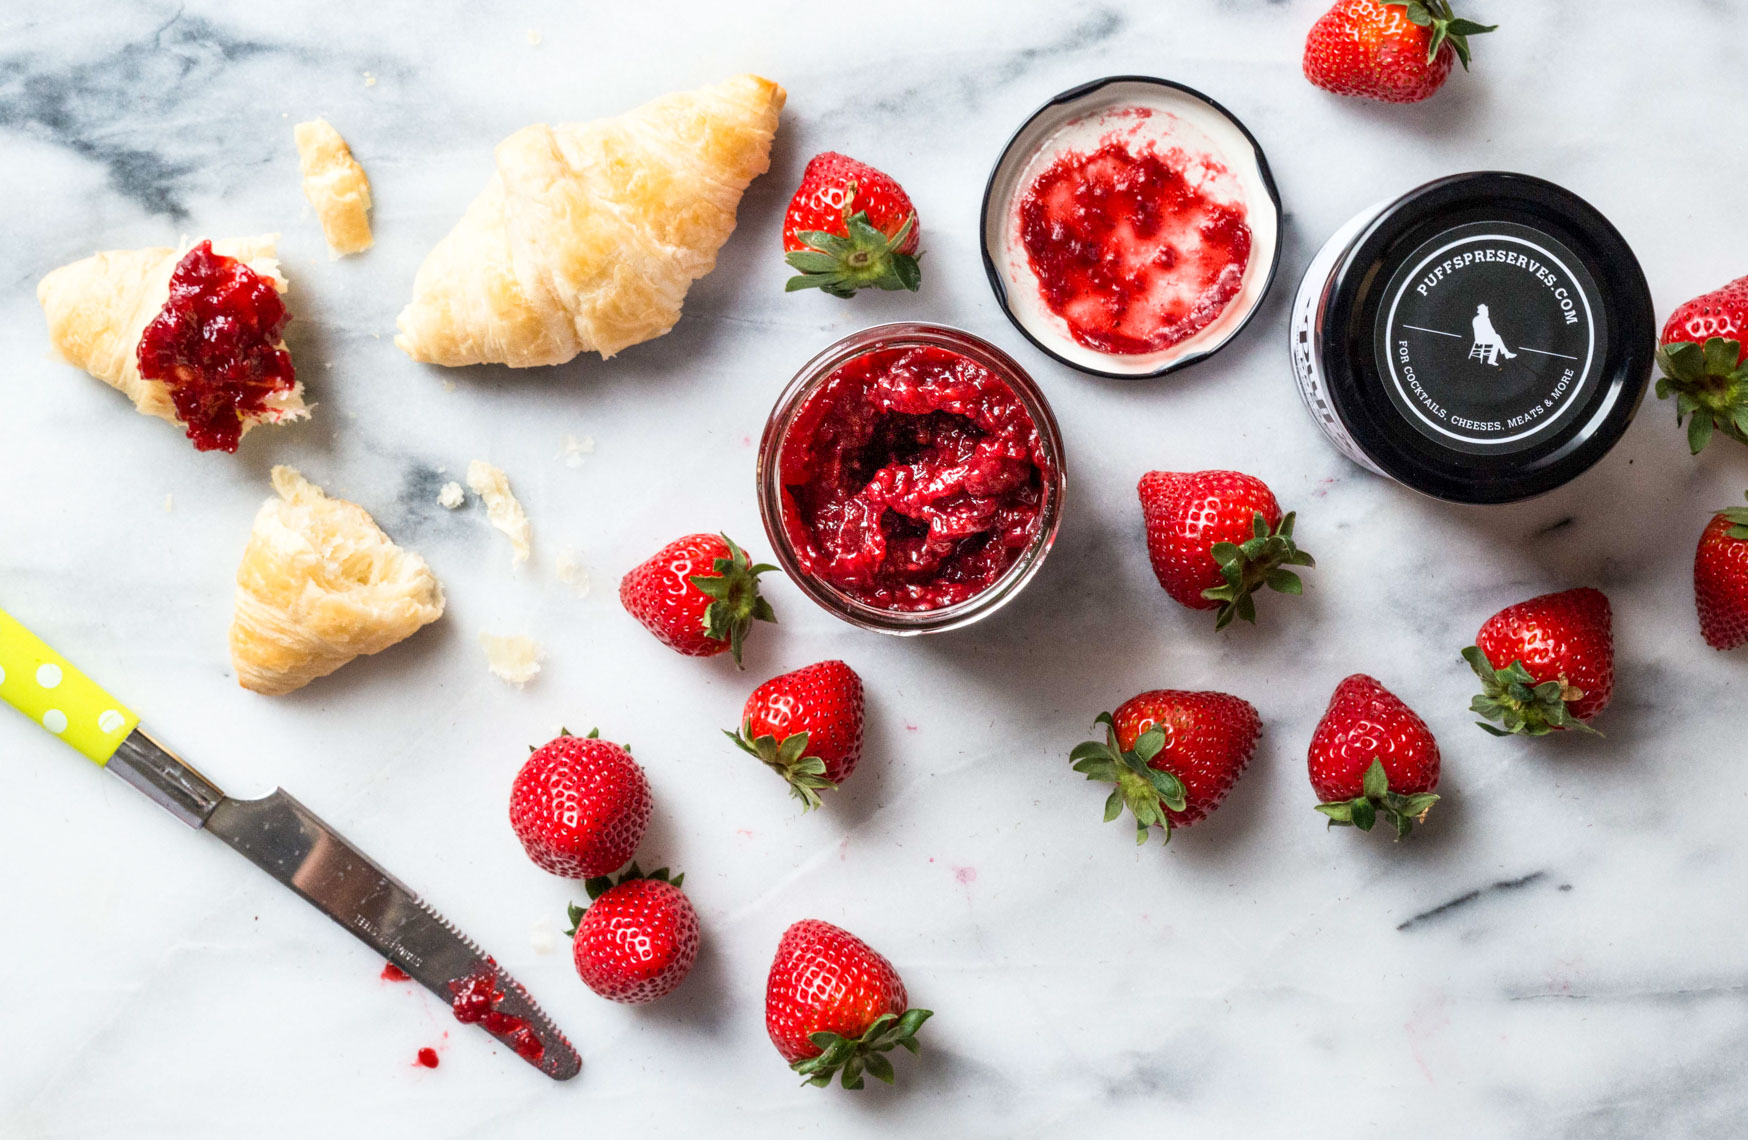 Strawberry Jam Compote with Croissant Spread on Marble Counter